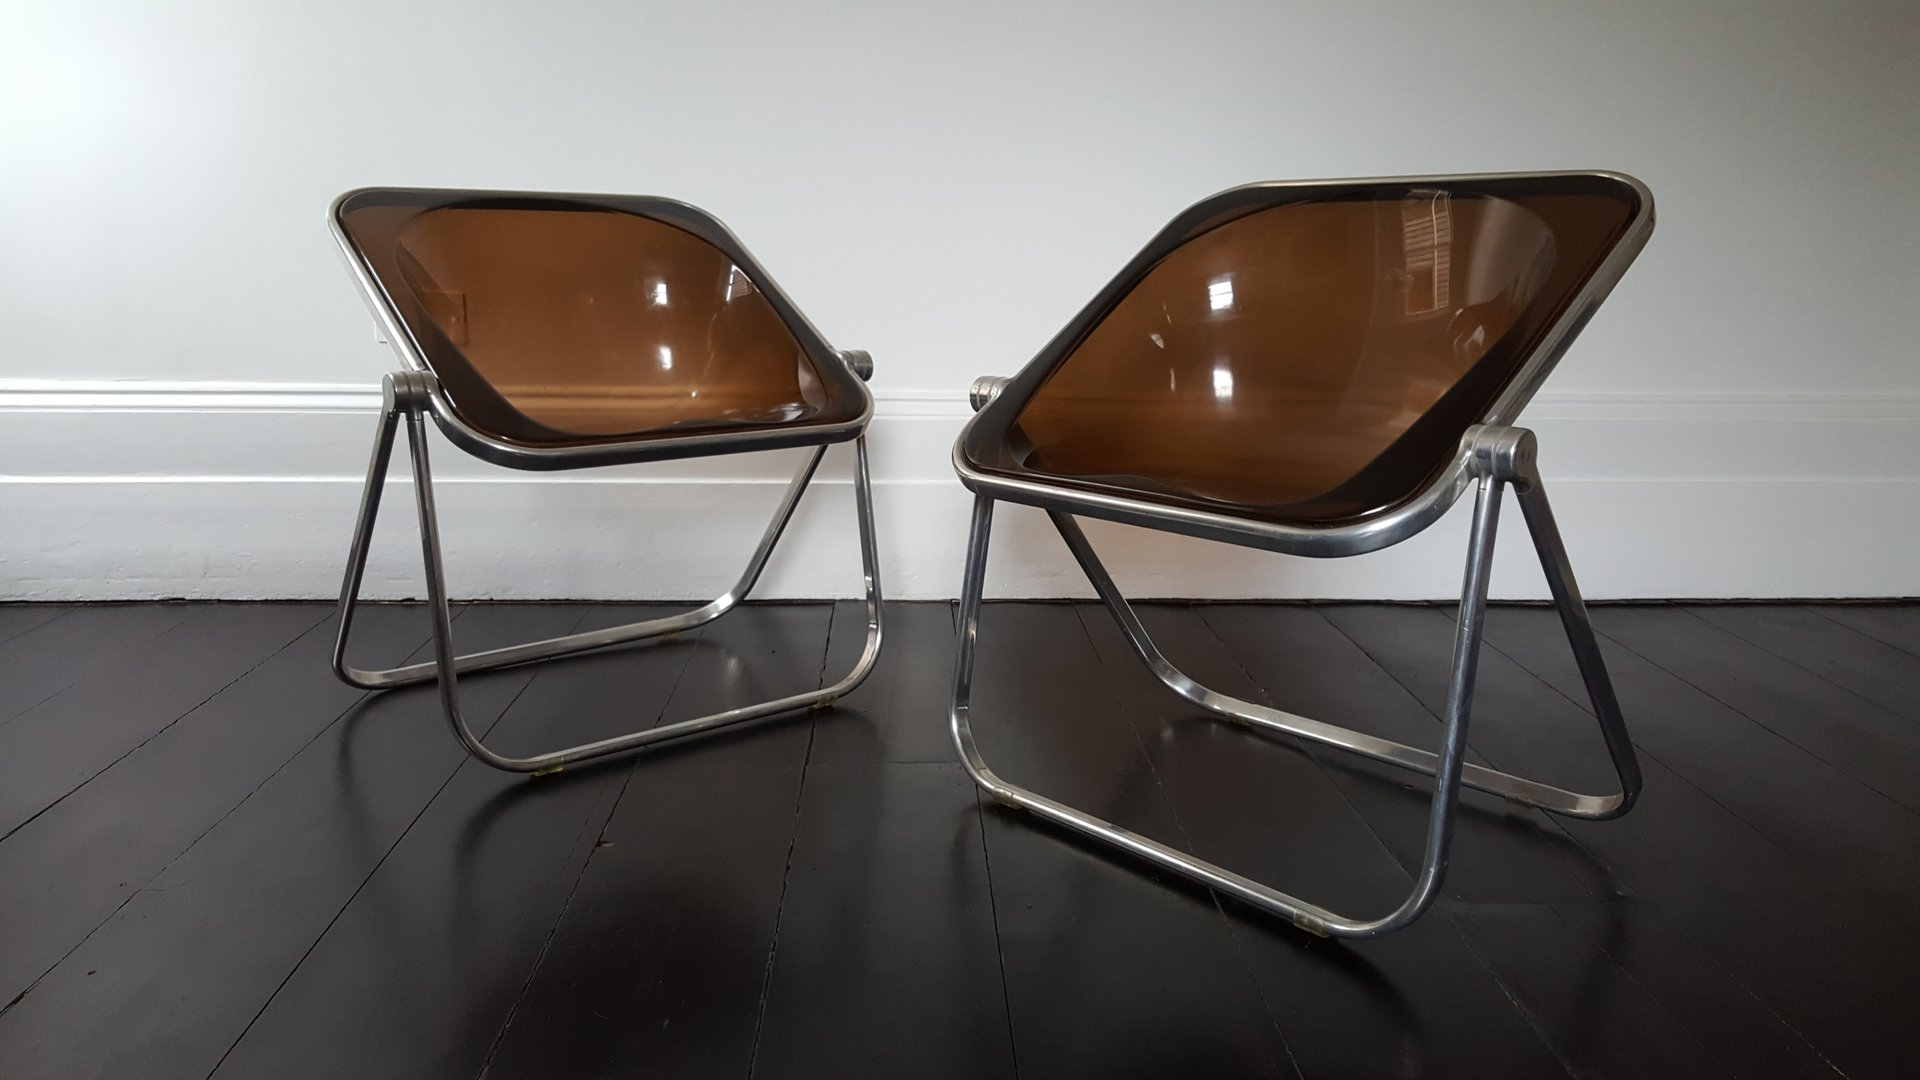 Plona Folding Chairs by Giancarlo Piretti for Castelli Set of 2